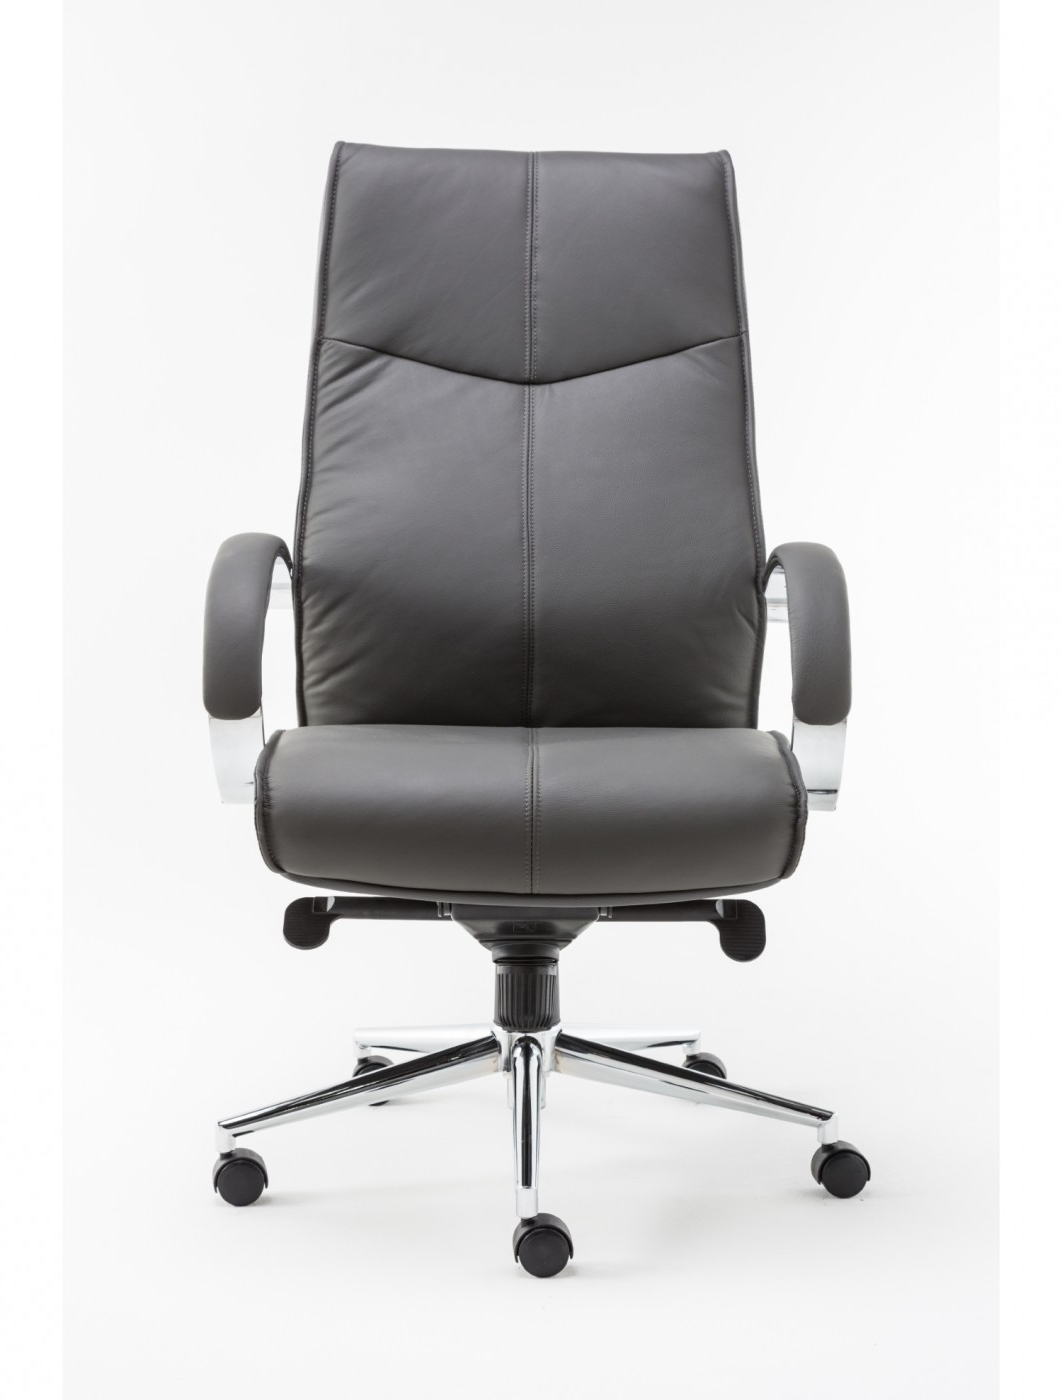 Alphason Verona Executive Office Chair Aoc1019gry (View 15 of 20)